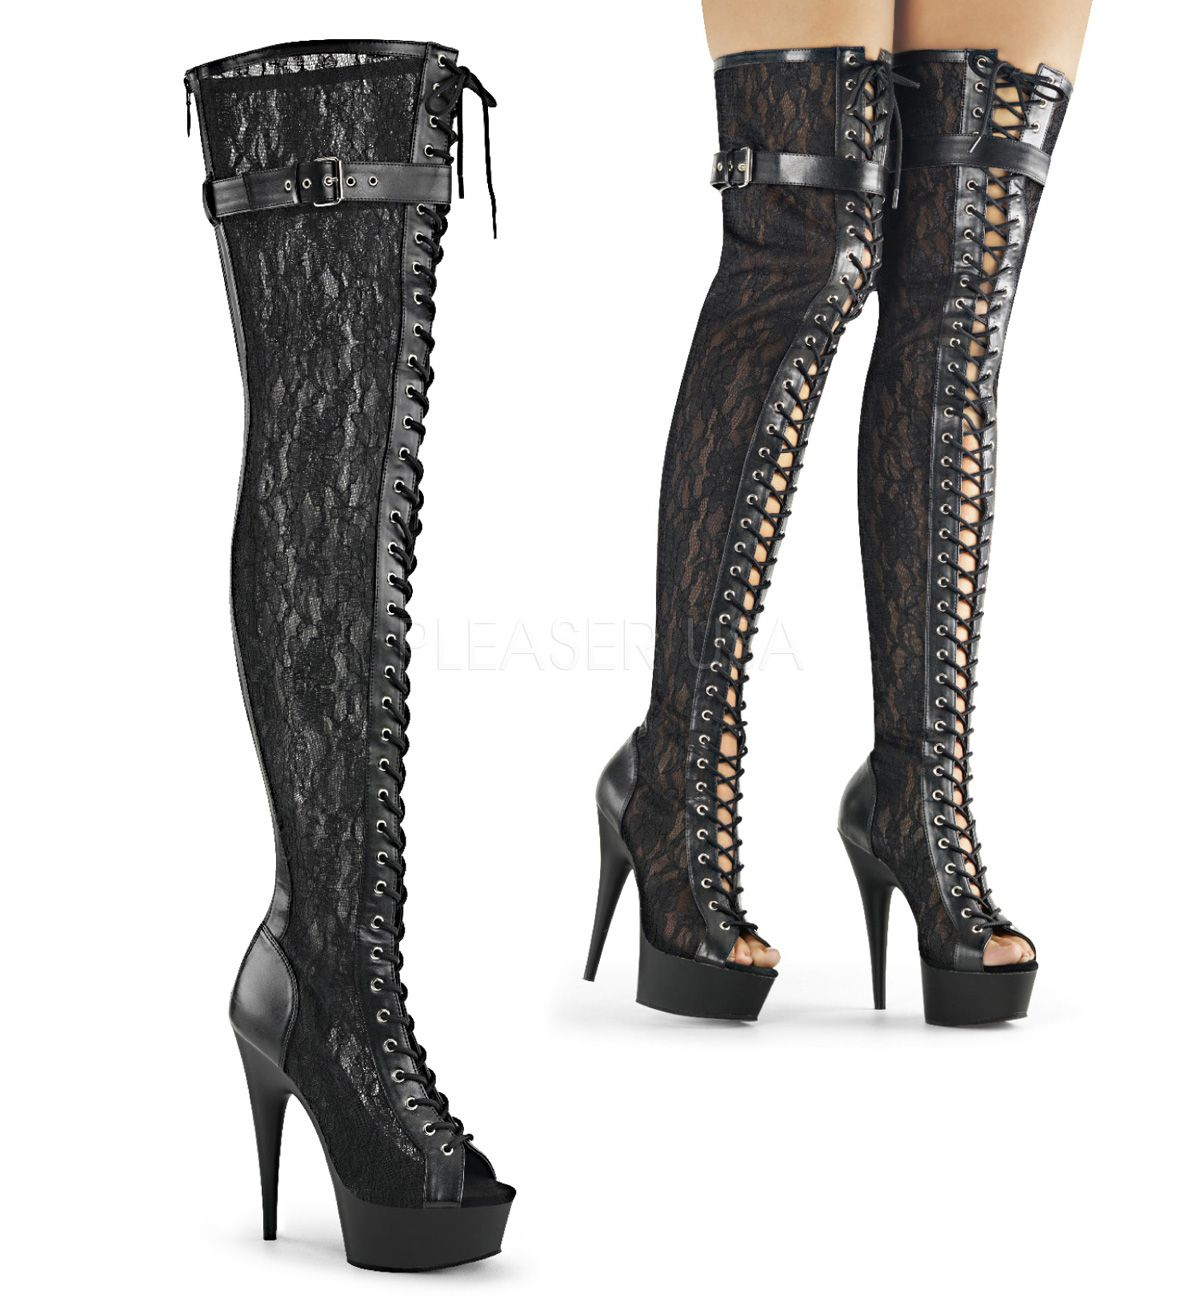 Peep Toe Front Lace up Mesh Thigh High Boot w Buckled Strap